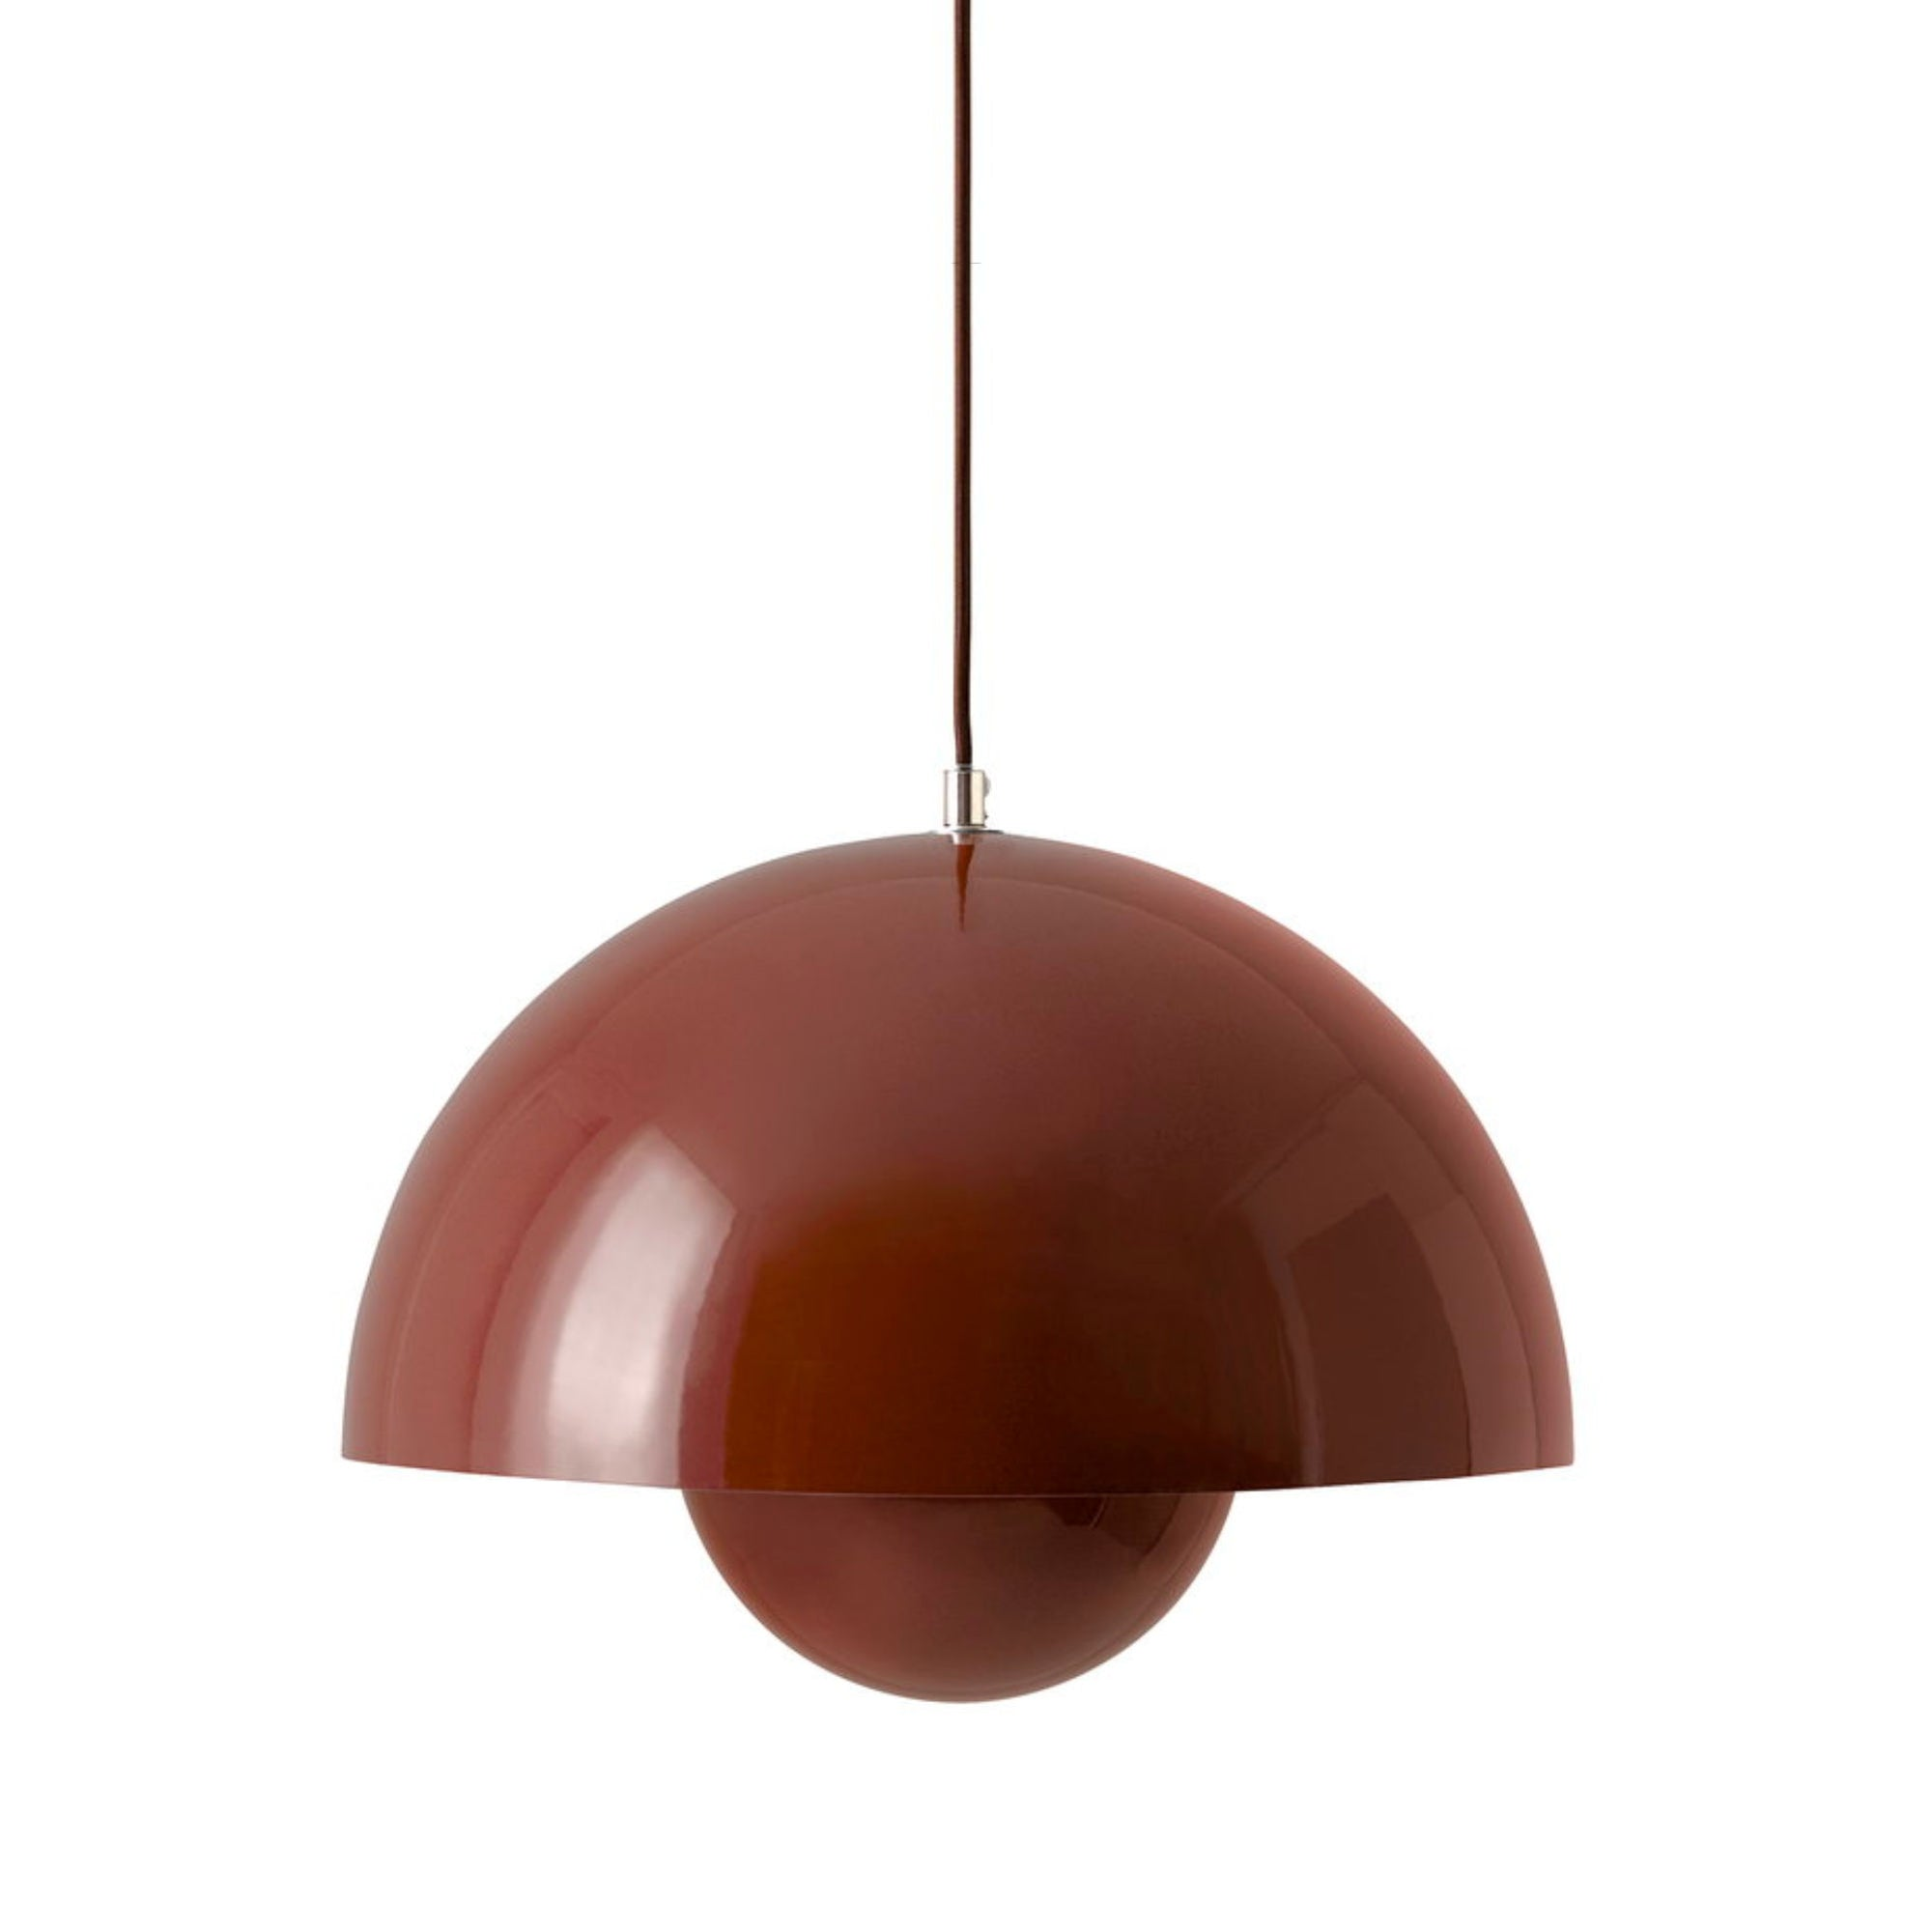 &Tradition Flowerpot pendant lamp, red brown